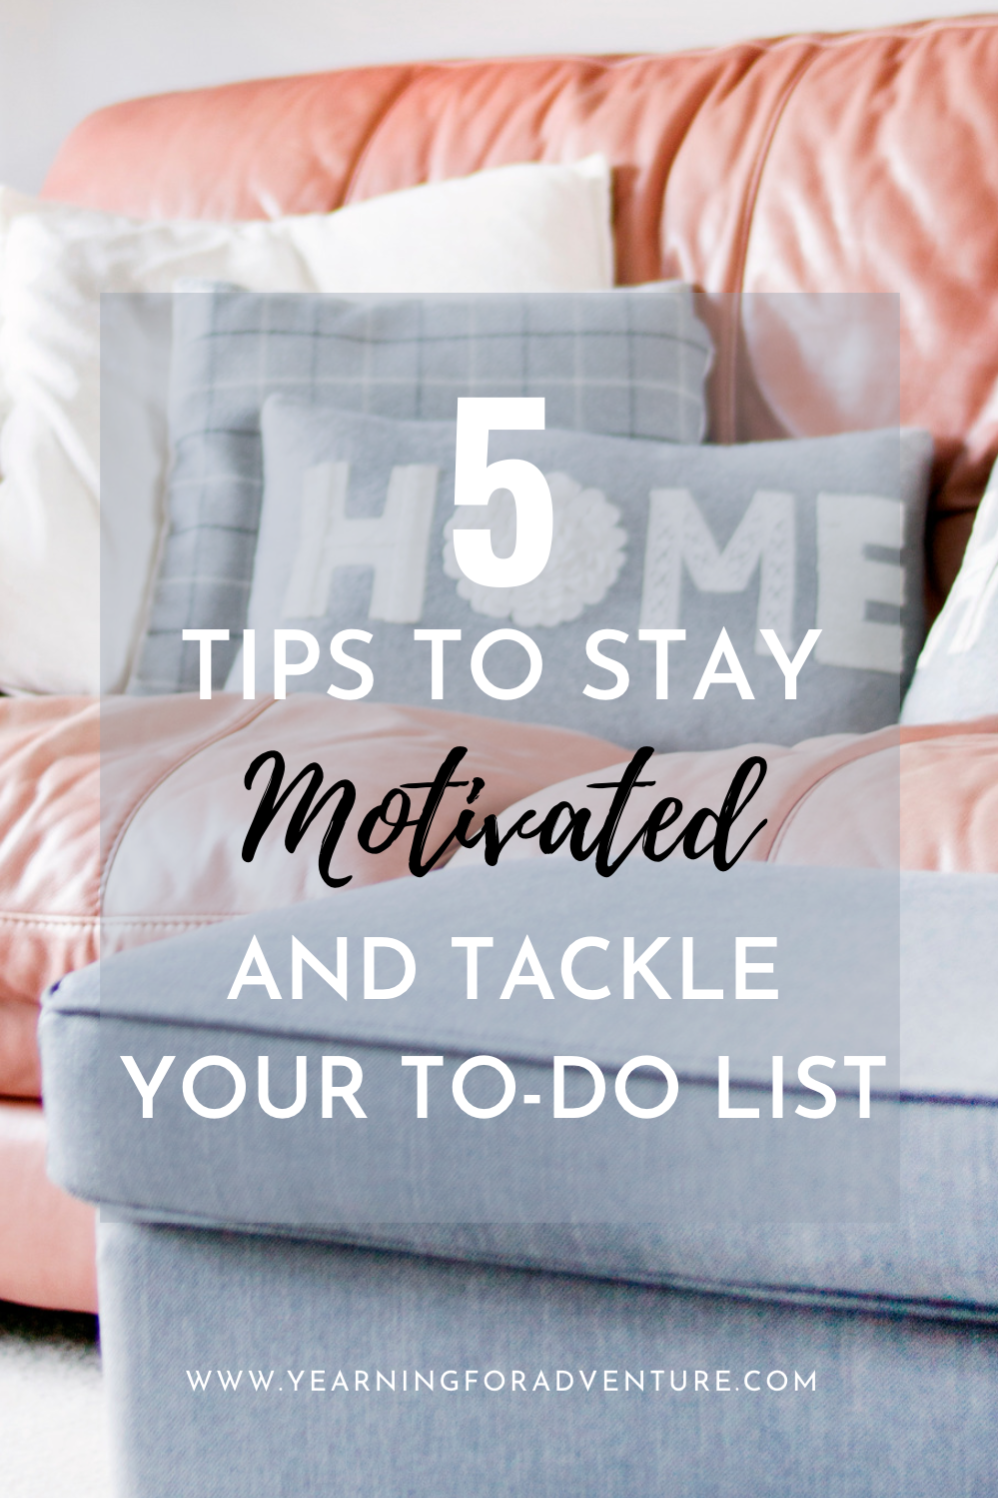 5 Tips to Tackle Your To Do List